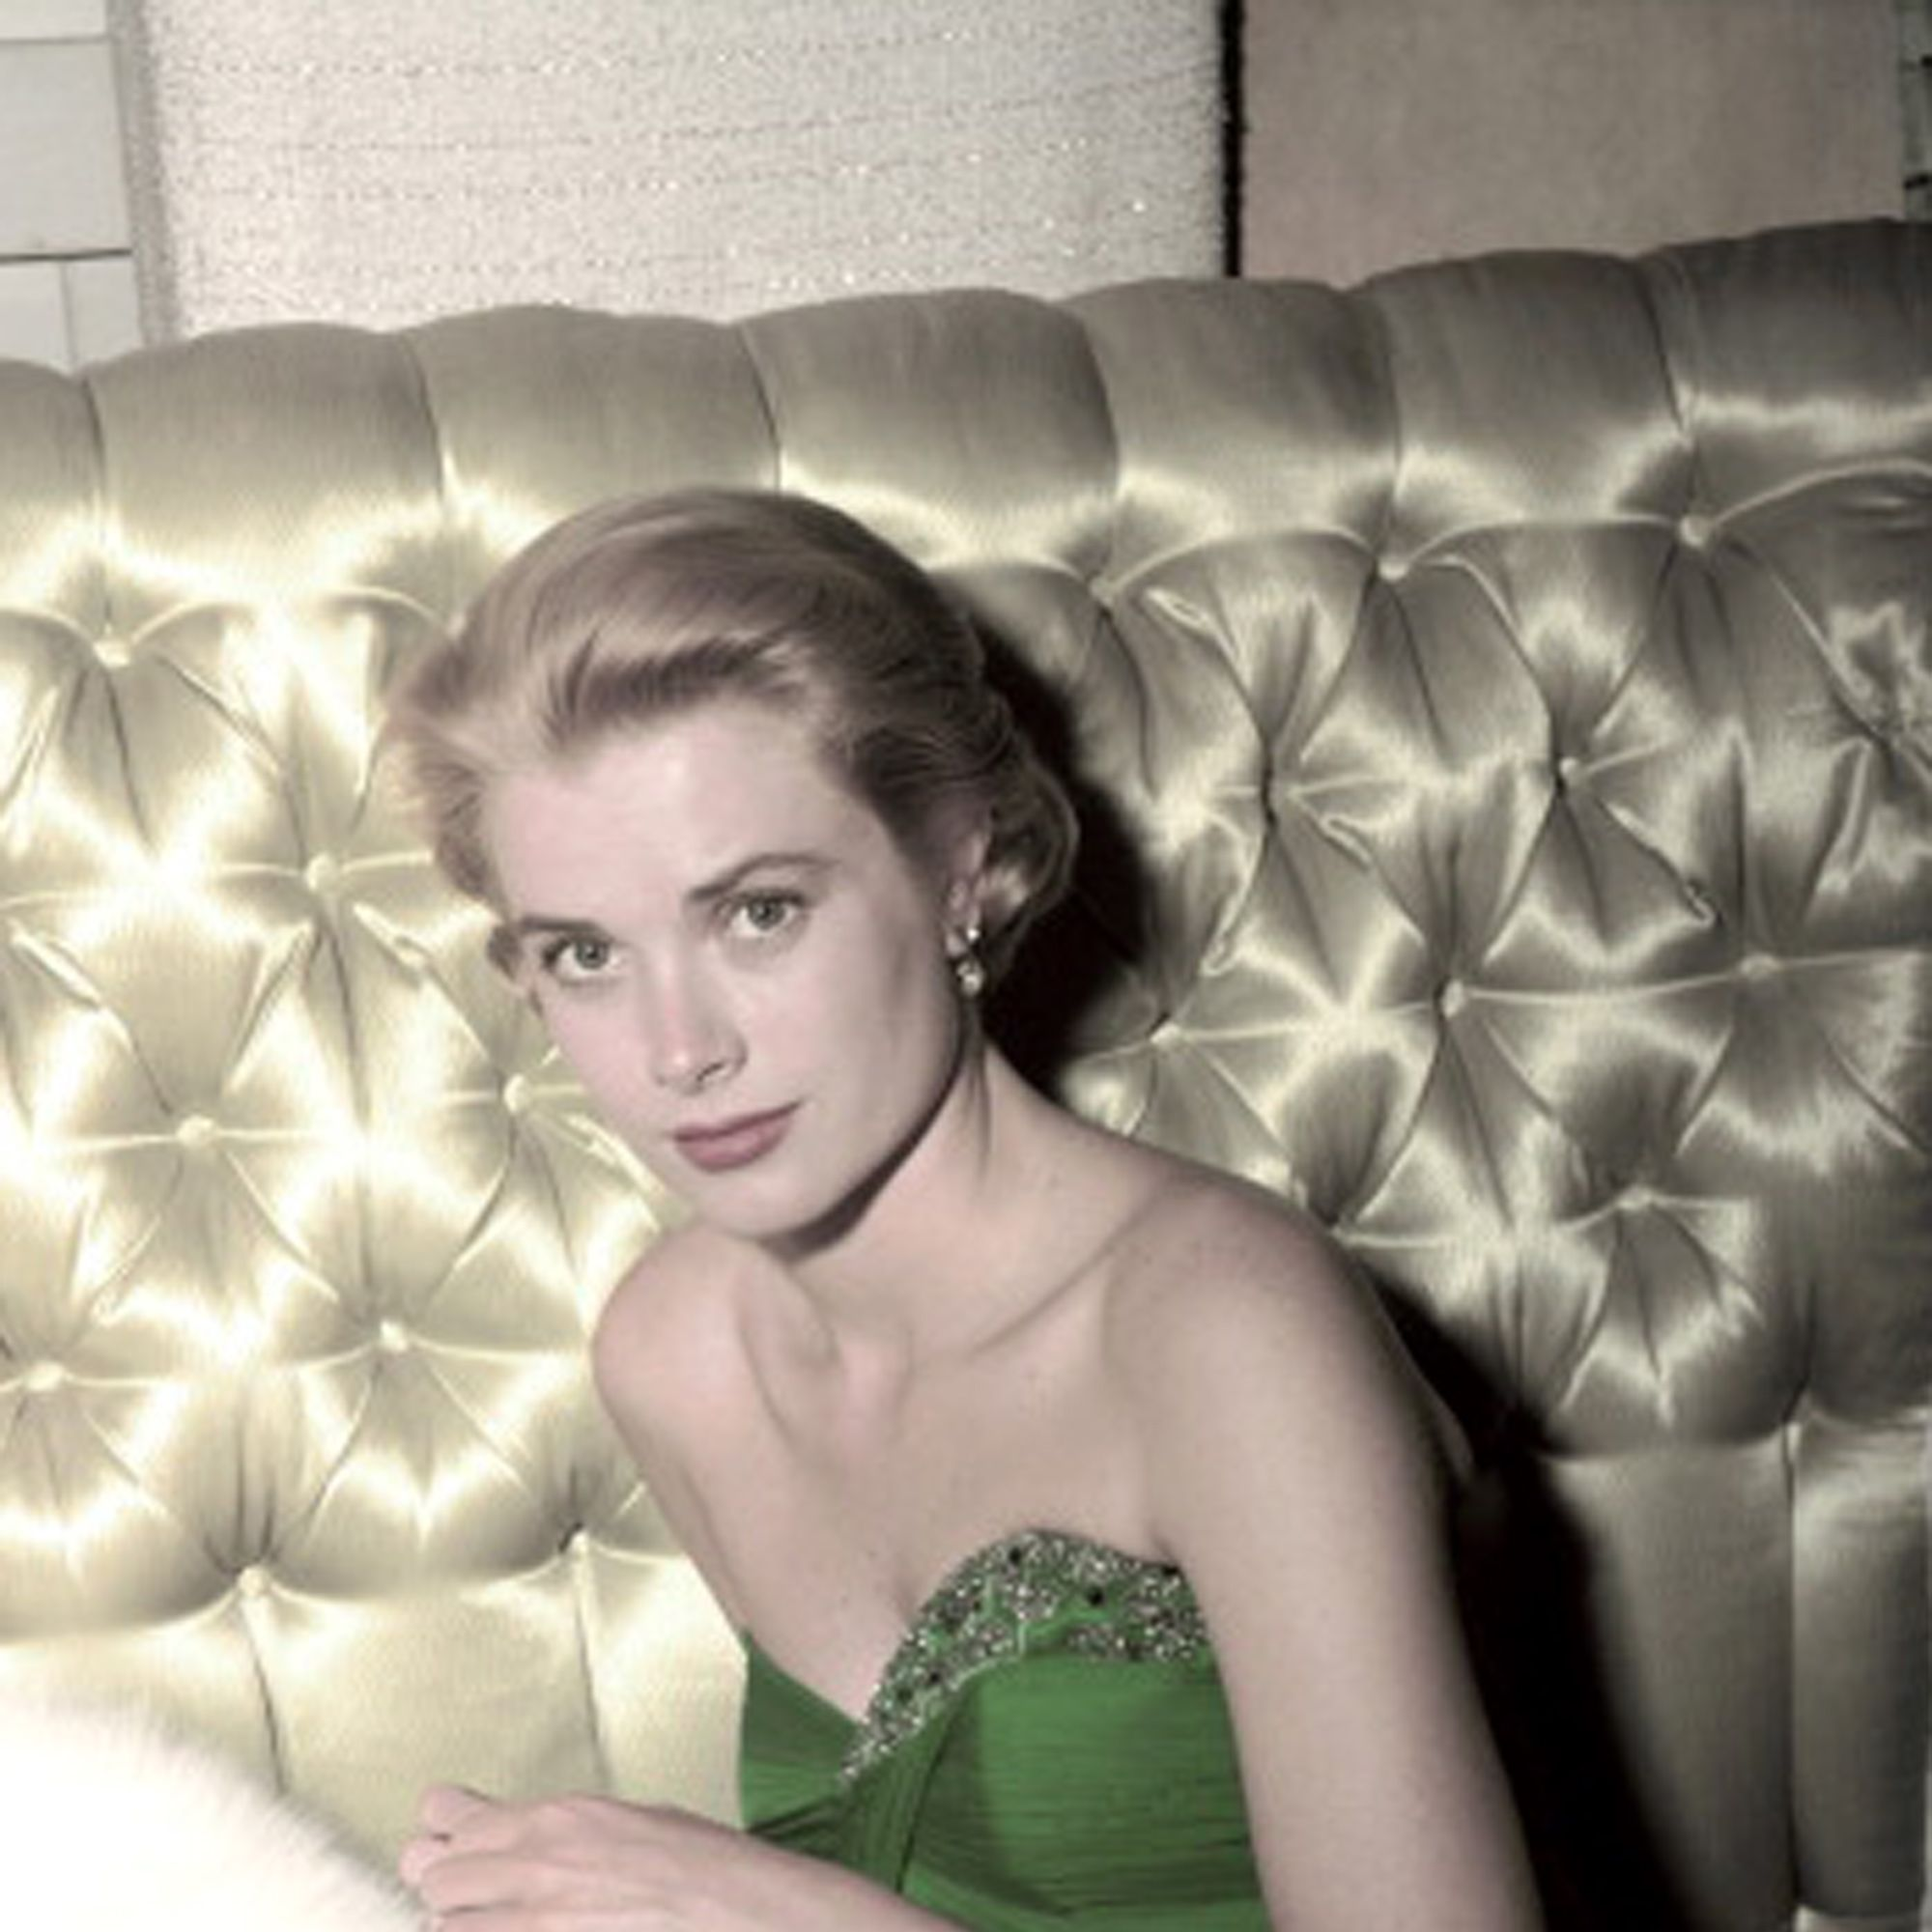 American actress Grace Kelly (1929 - 1982) wearing a green dress for St Patrick's Day, 1954. (Photo by Gene Lester/Getty Images)